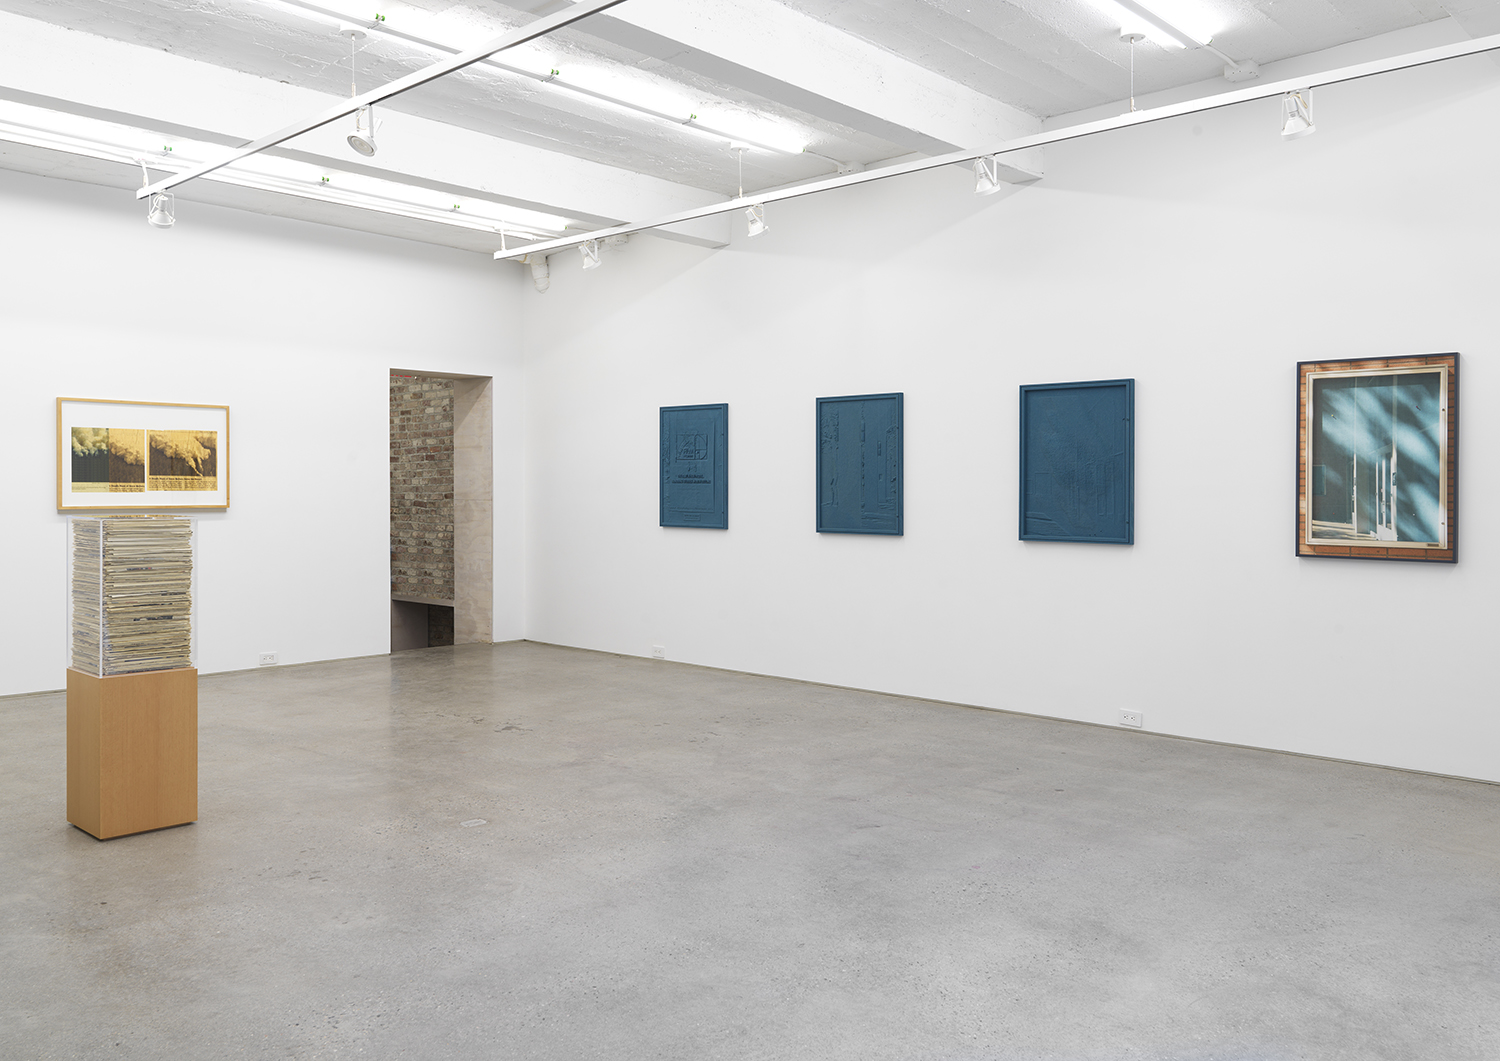 Installation view, Jennifer Bolande: The Composition of Decomposition, Magenta Plains, New York, NY, 2020